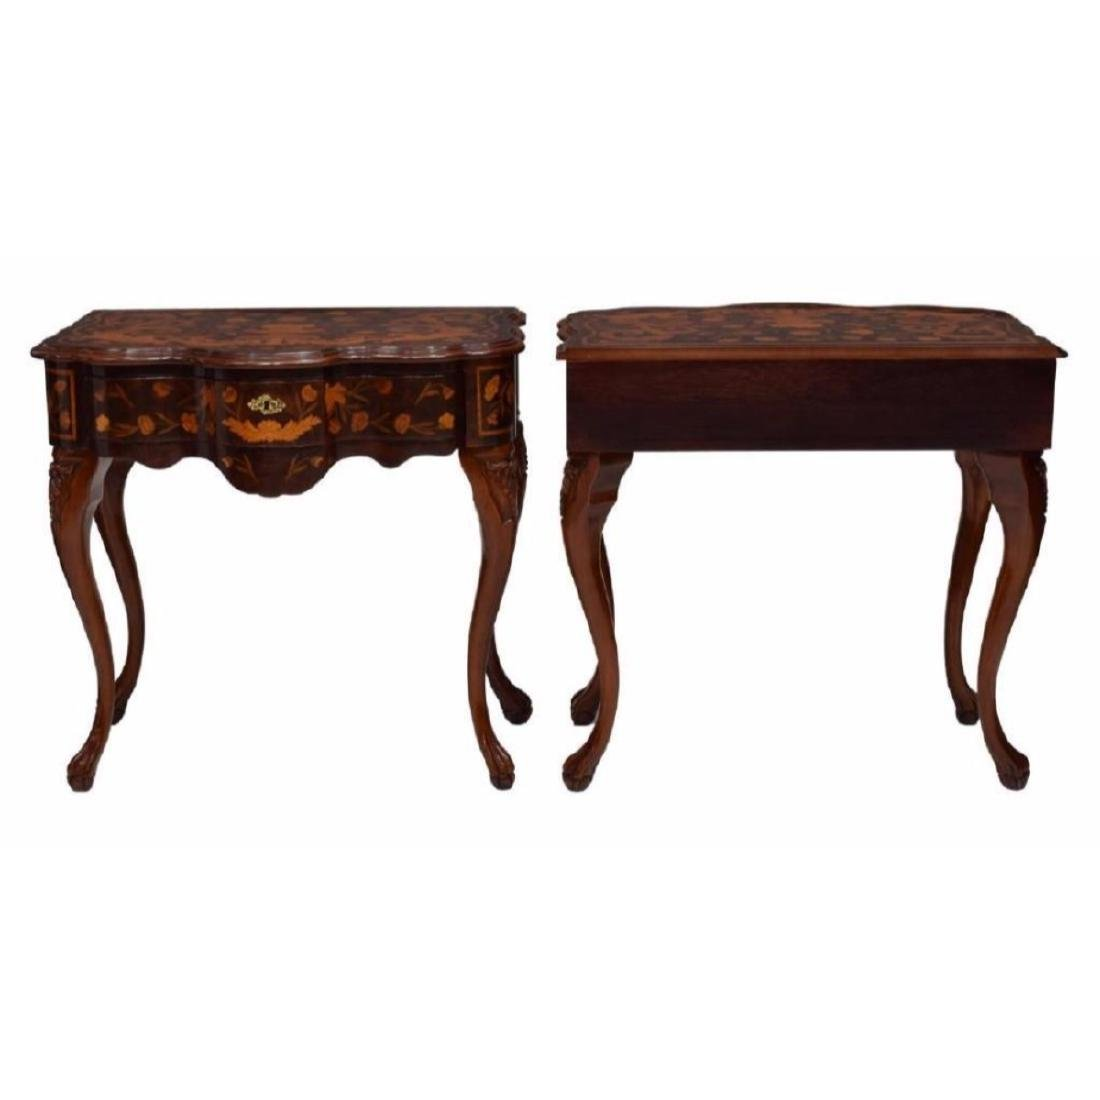 Pair of Italian Floral Inlaid Console Tables - 2